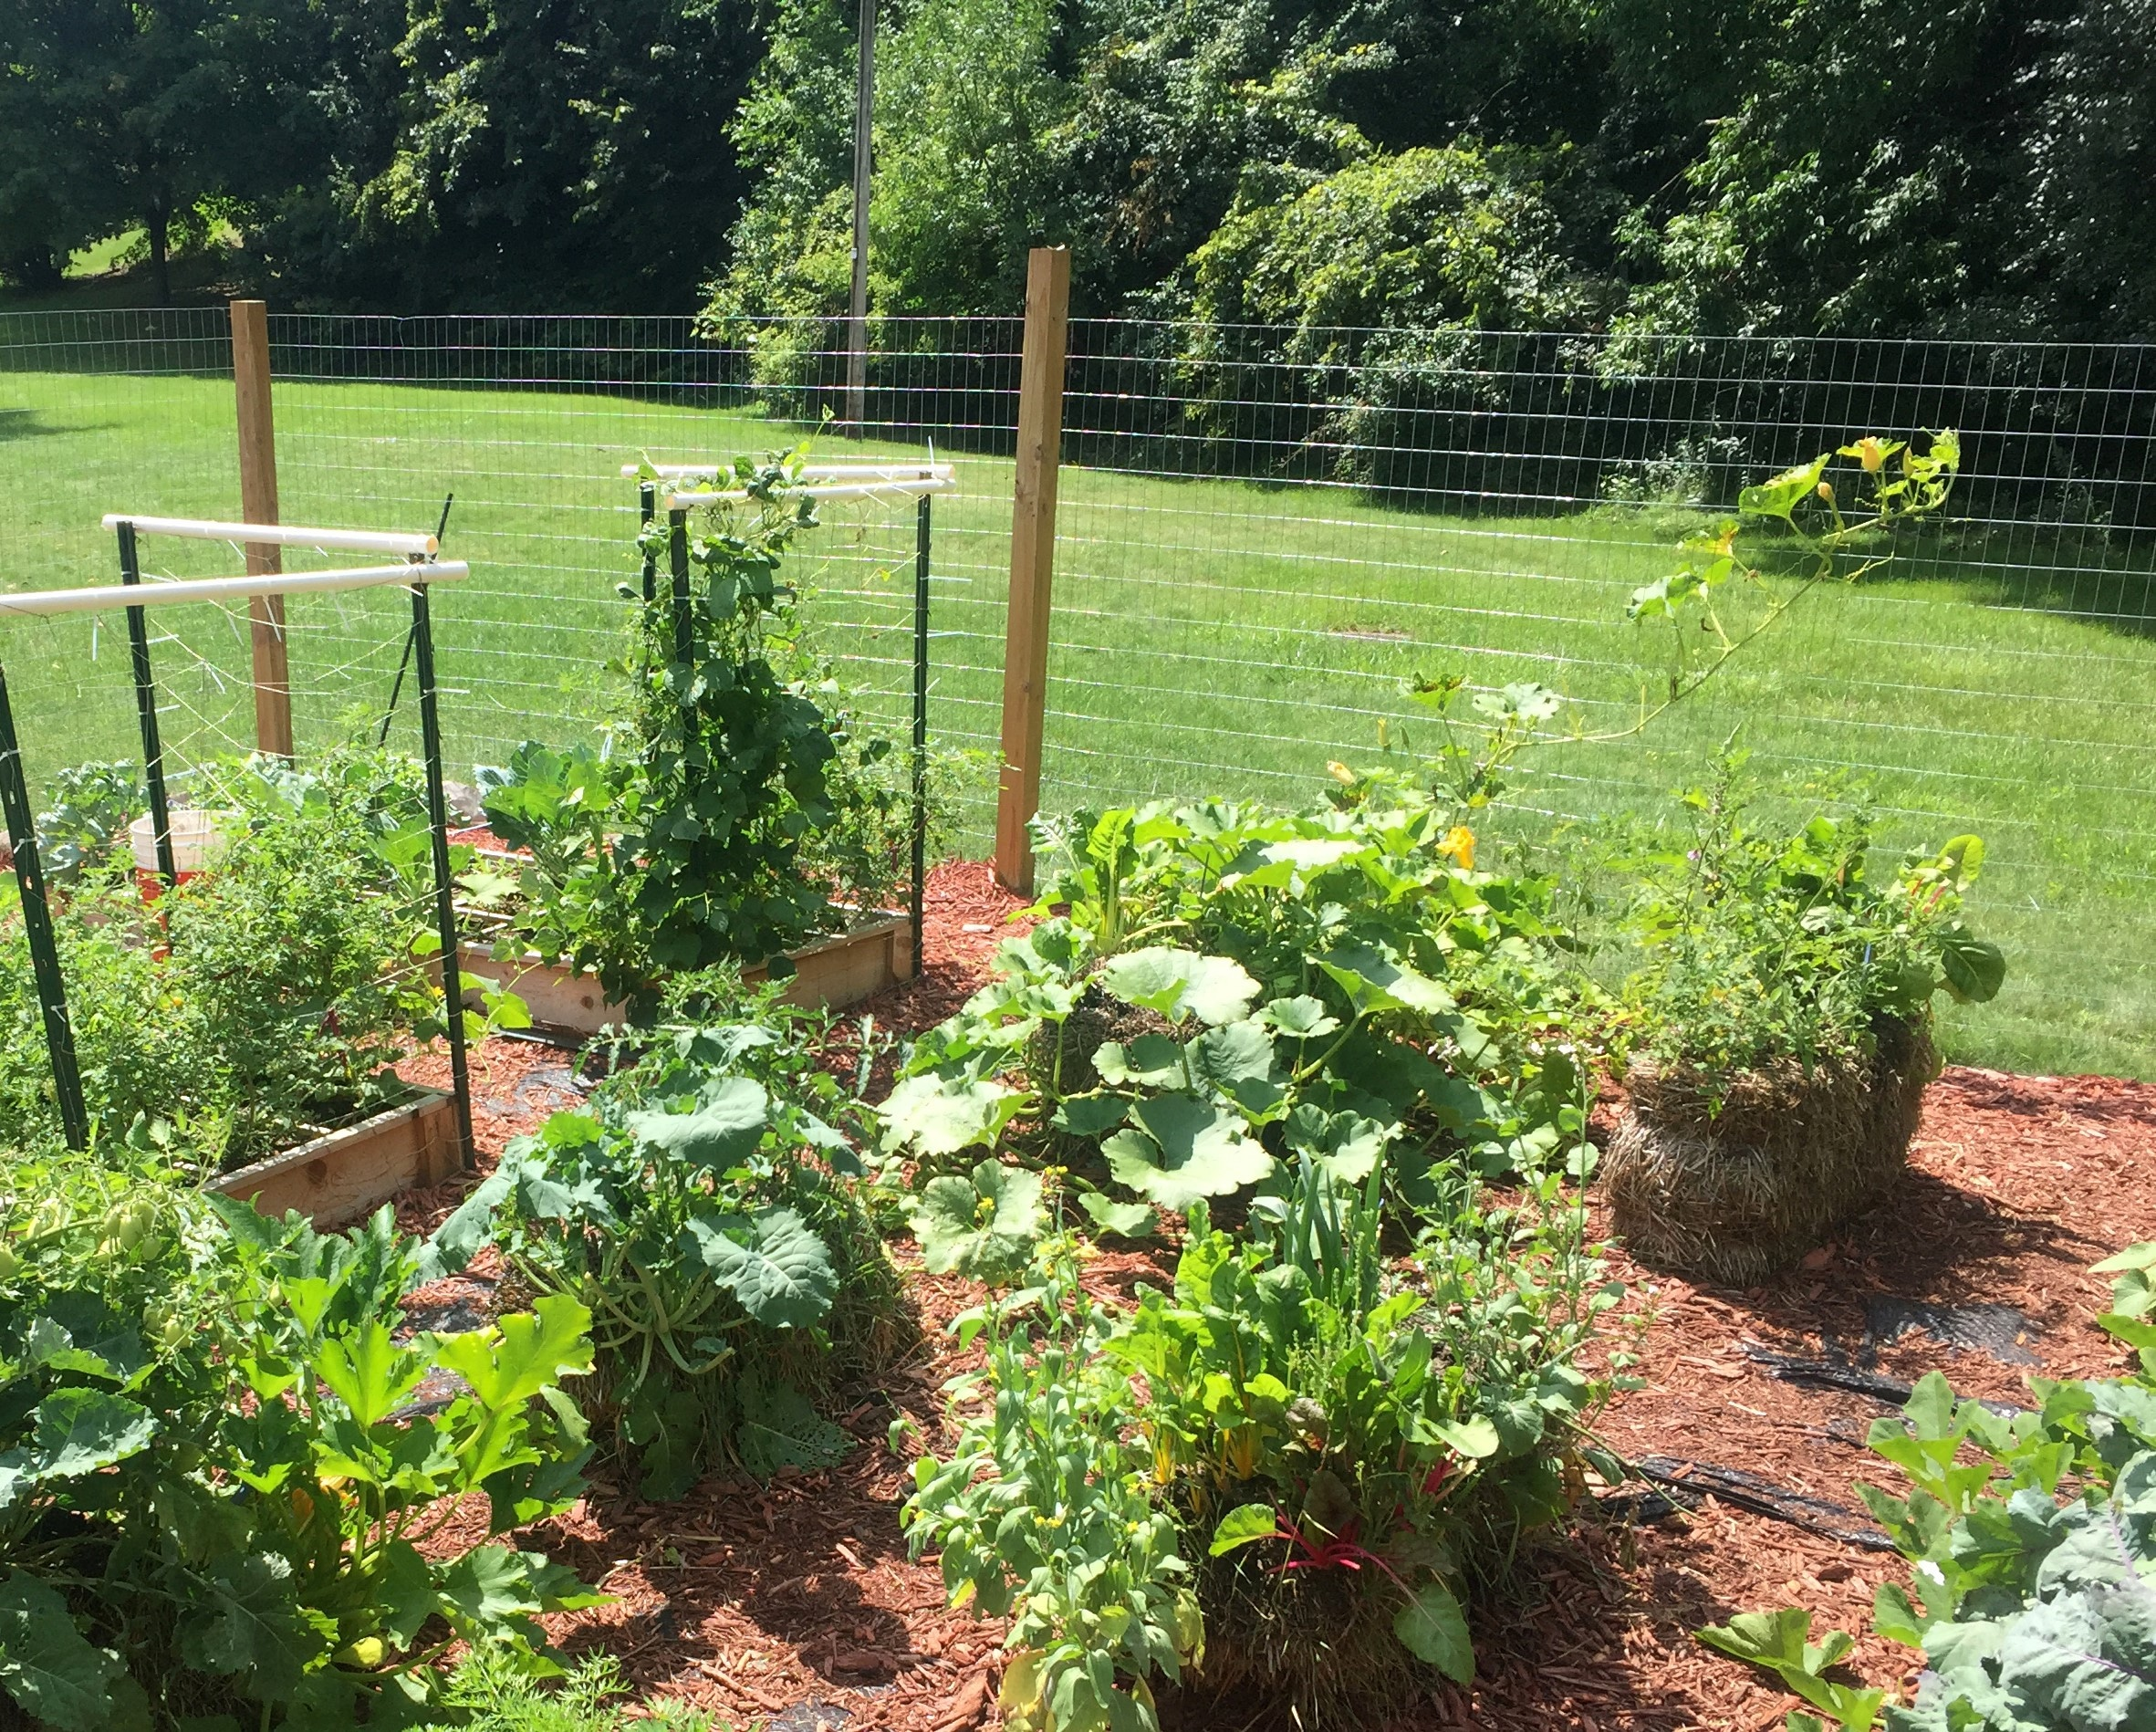 prepare for challenging times by growing your own food